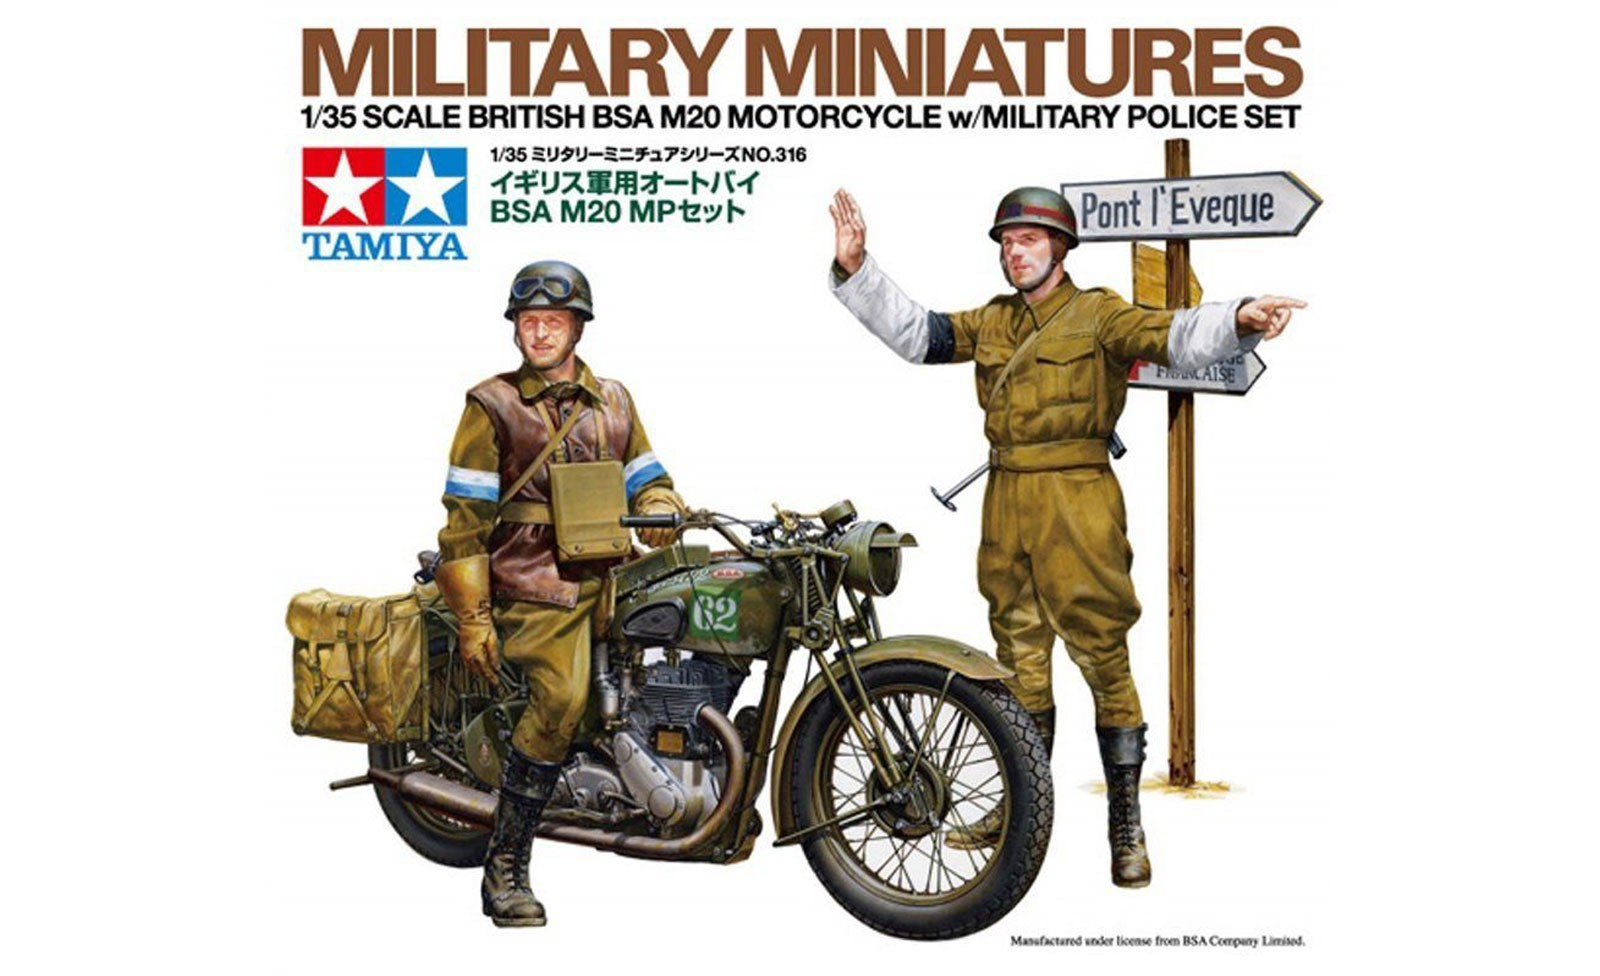 British BSA M20 Motorcycle - With Military Police Set - Tamiya 35316 - plastic model kit - 1/35 scale